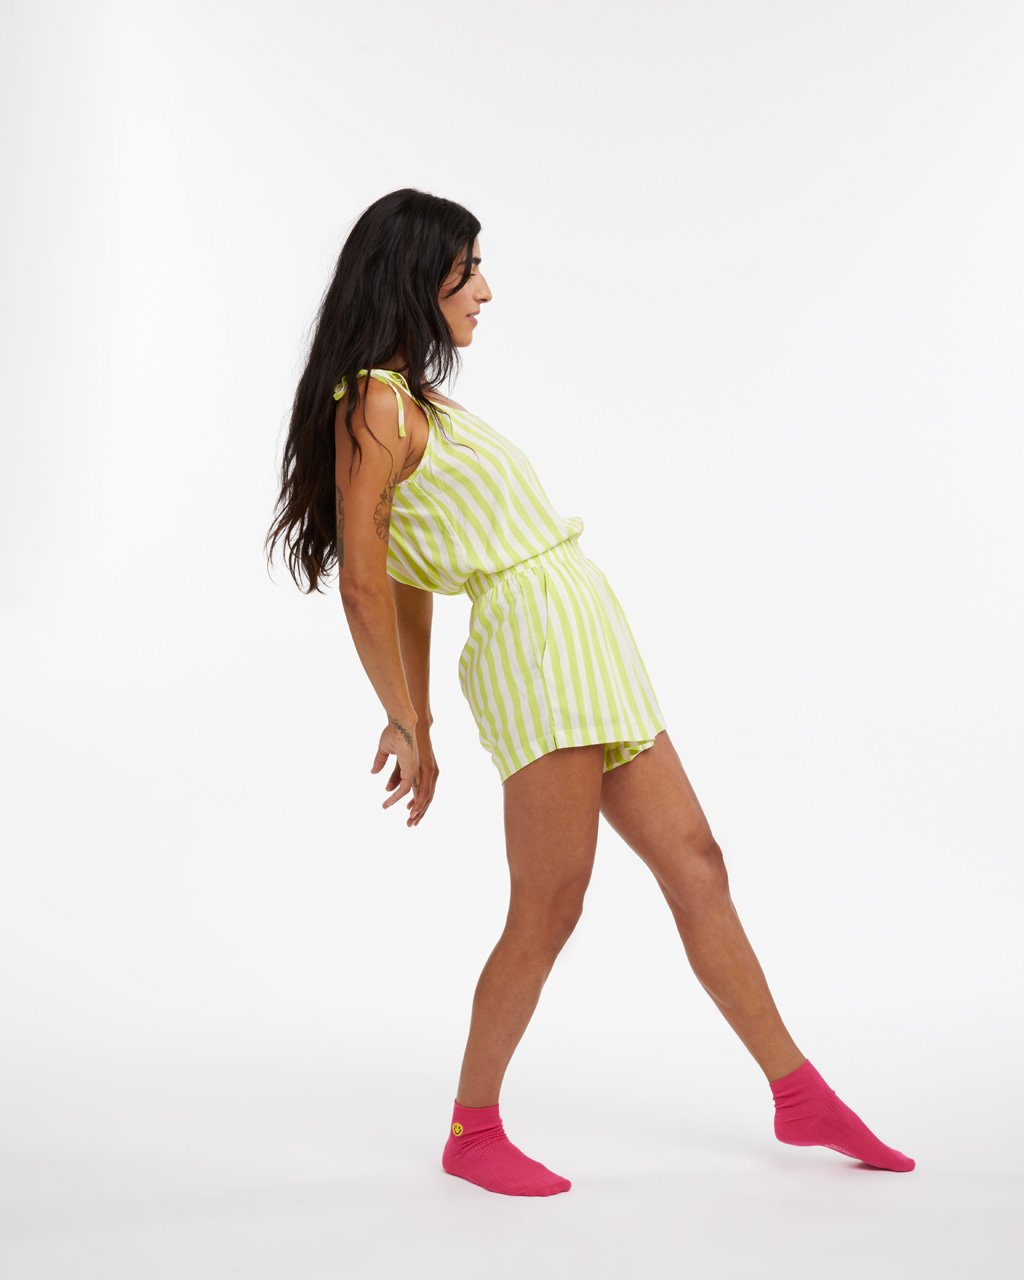 model leaned back wearing our lime green stripe chill shorts with matching tank and hot pink socks